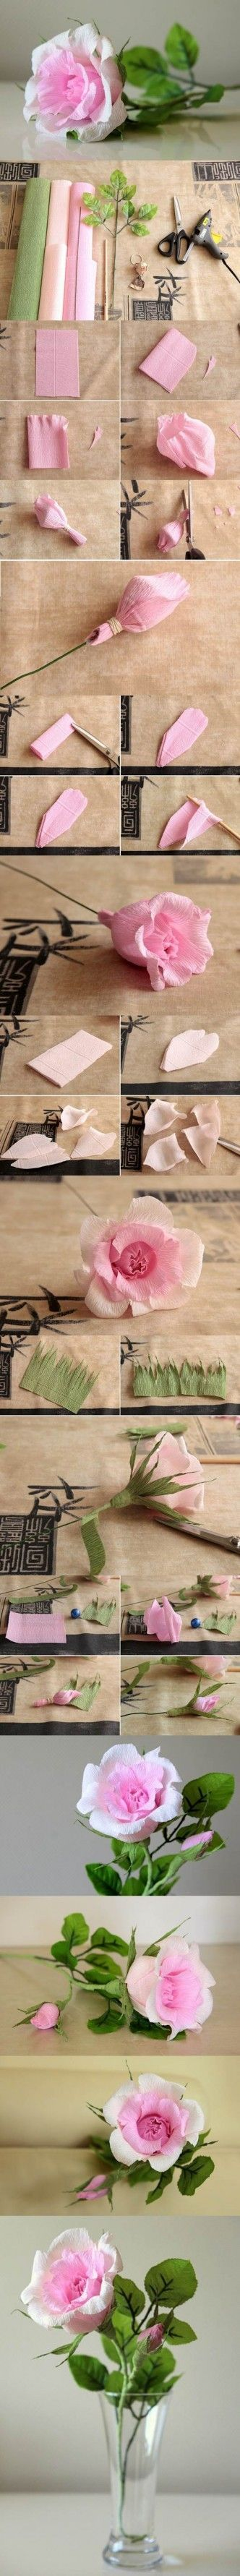 best favorite other things images on pinterest crafts diy and